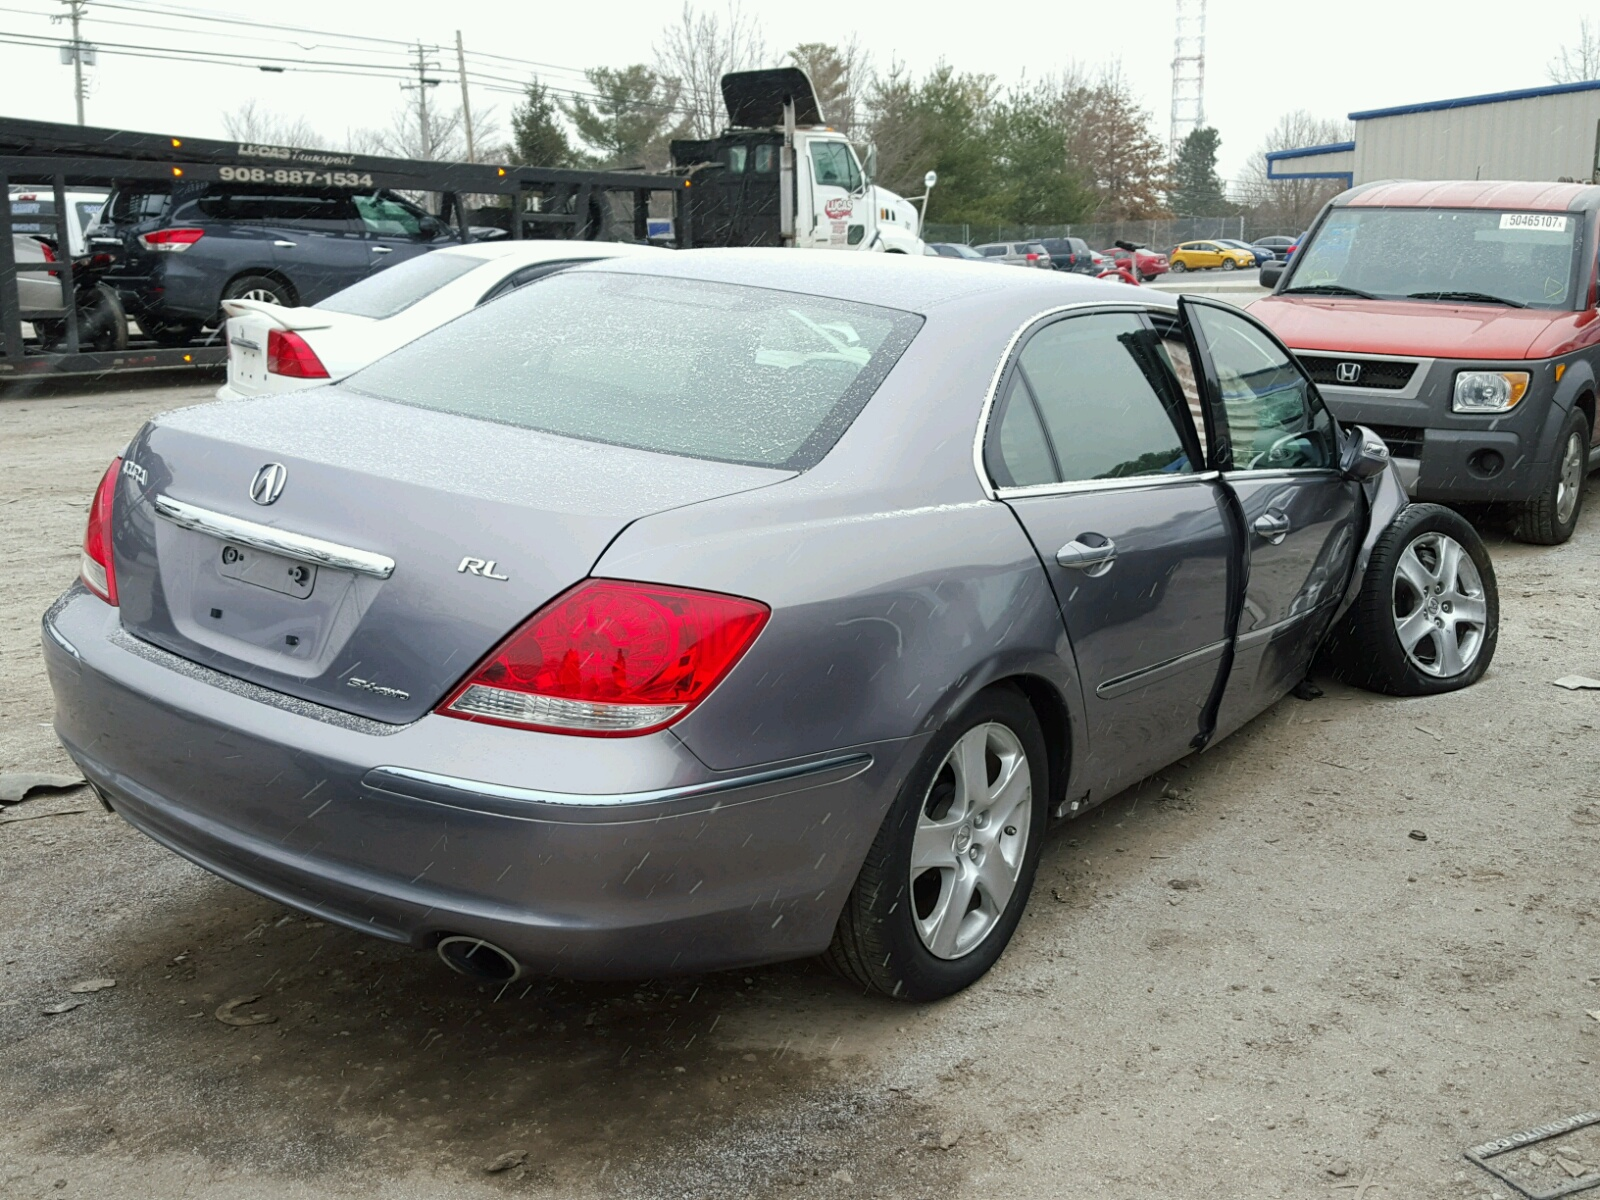 spec a acura cars for glamours sale of rl